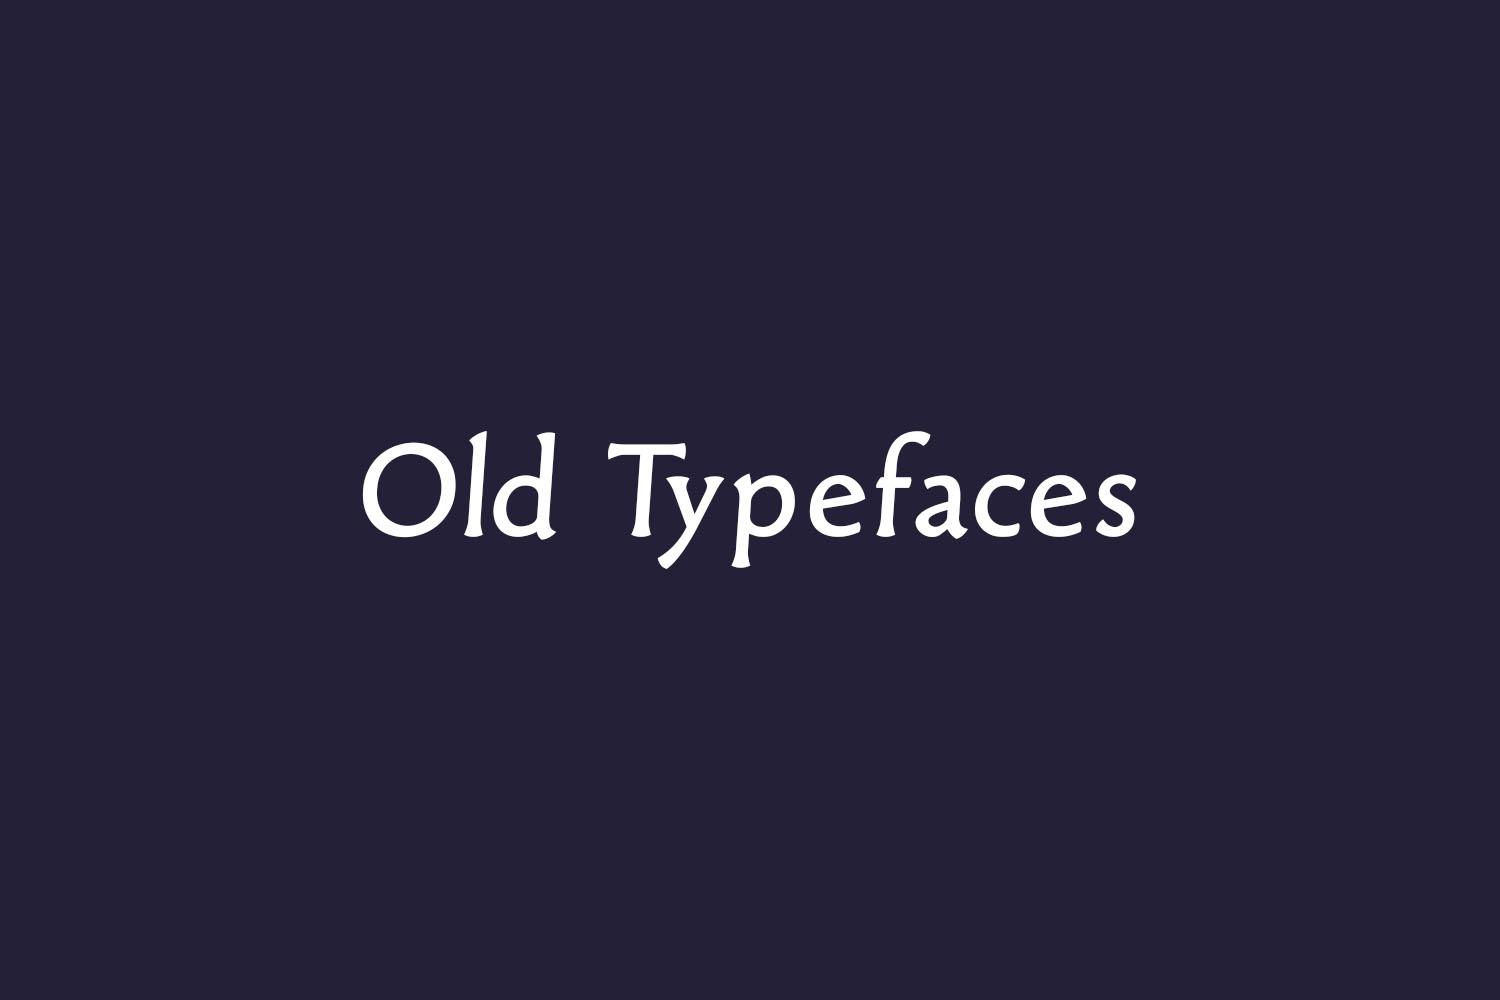 Old Typefaces Free Font